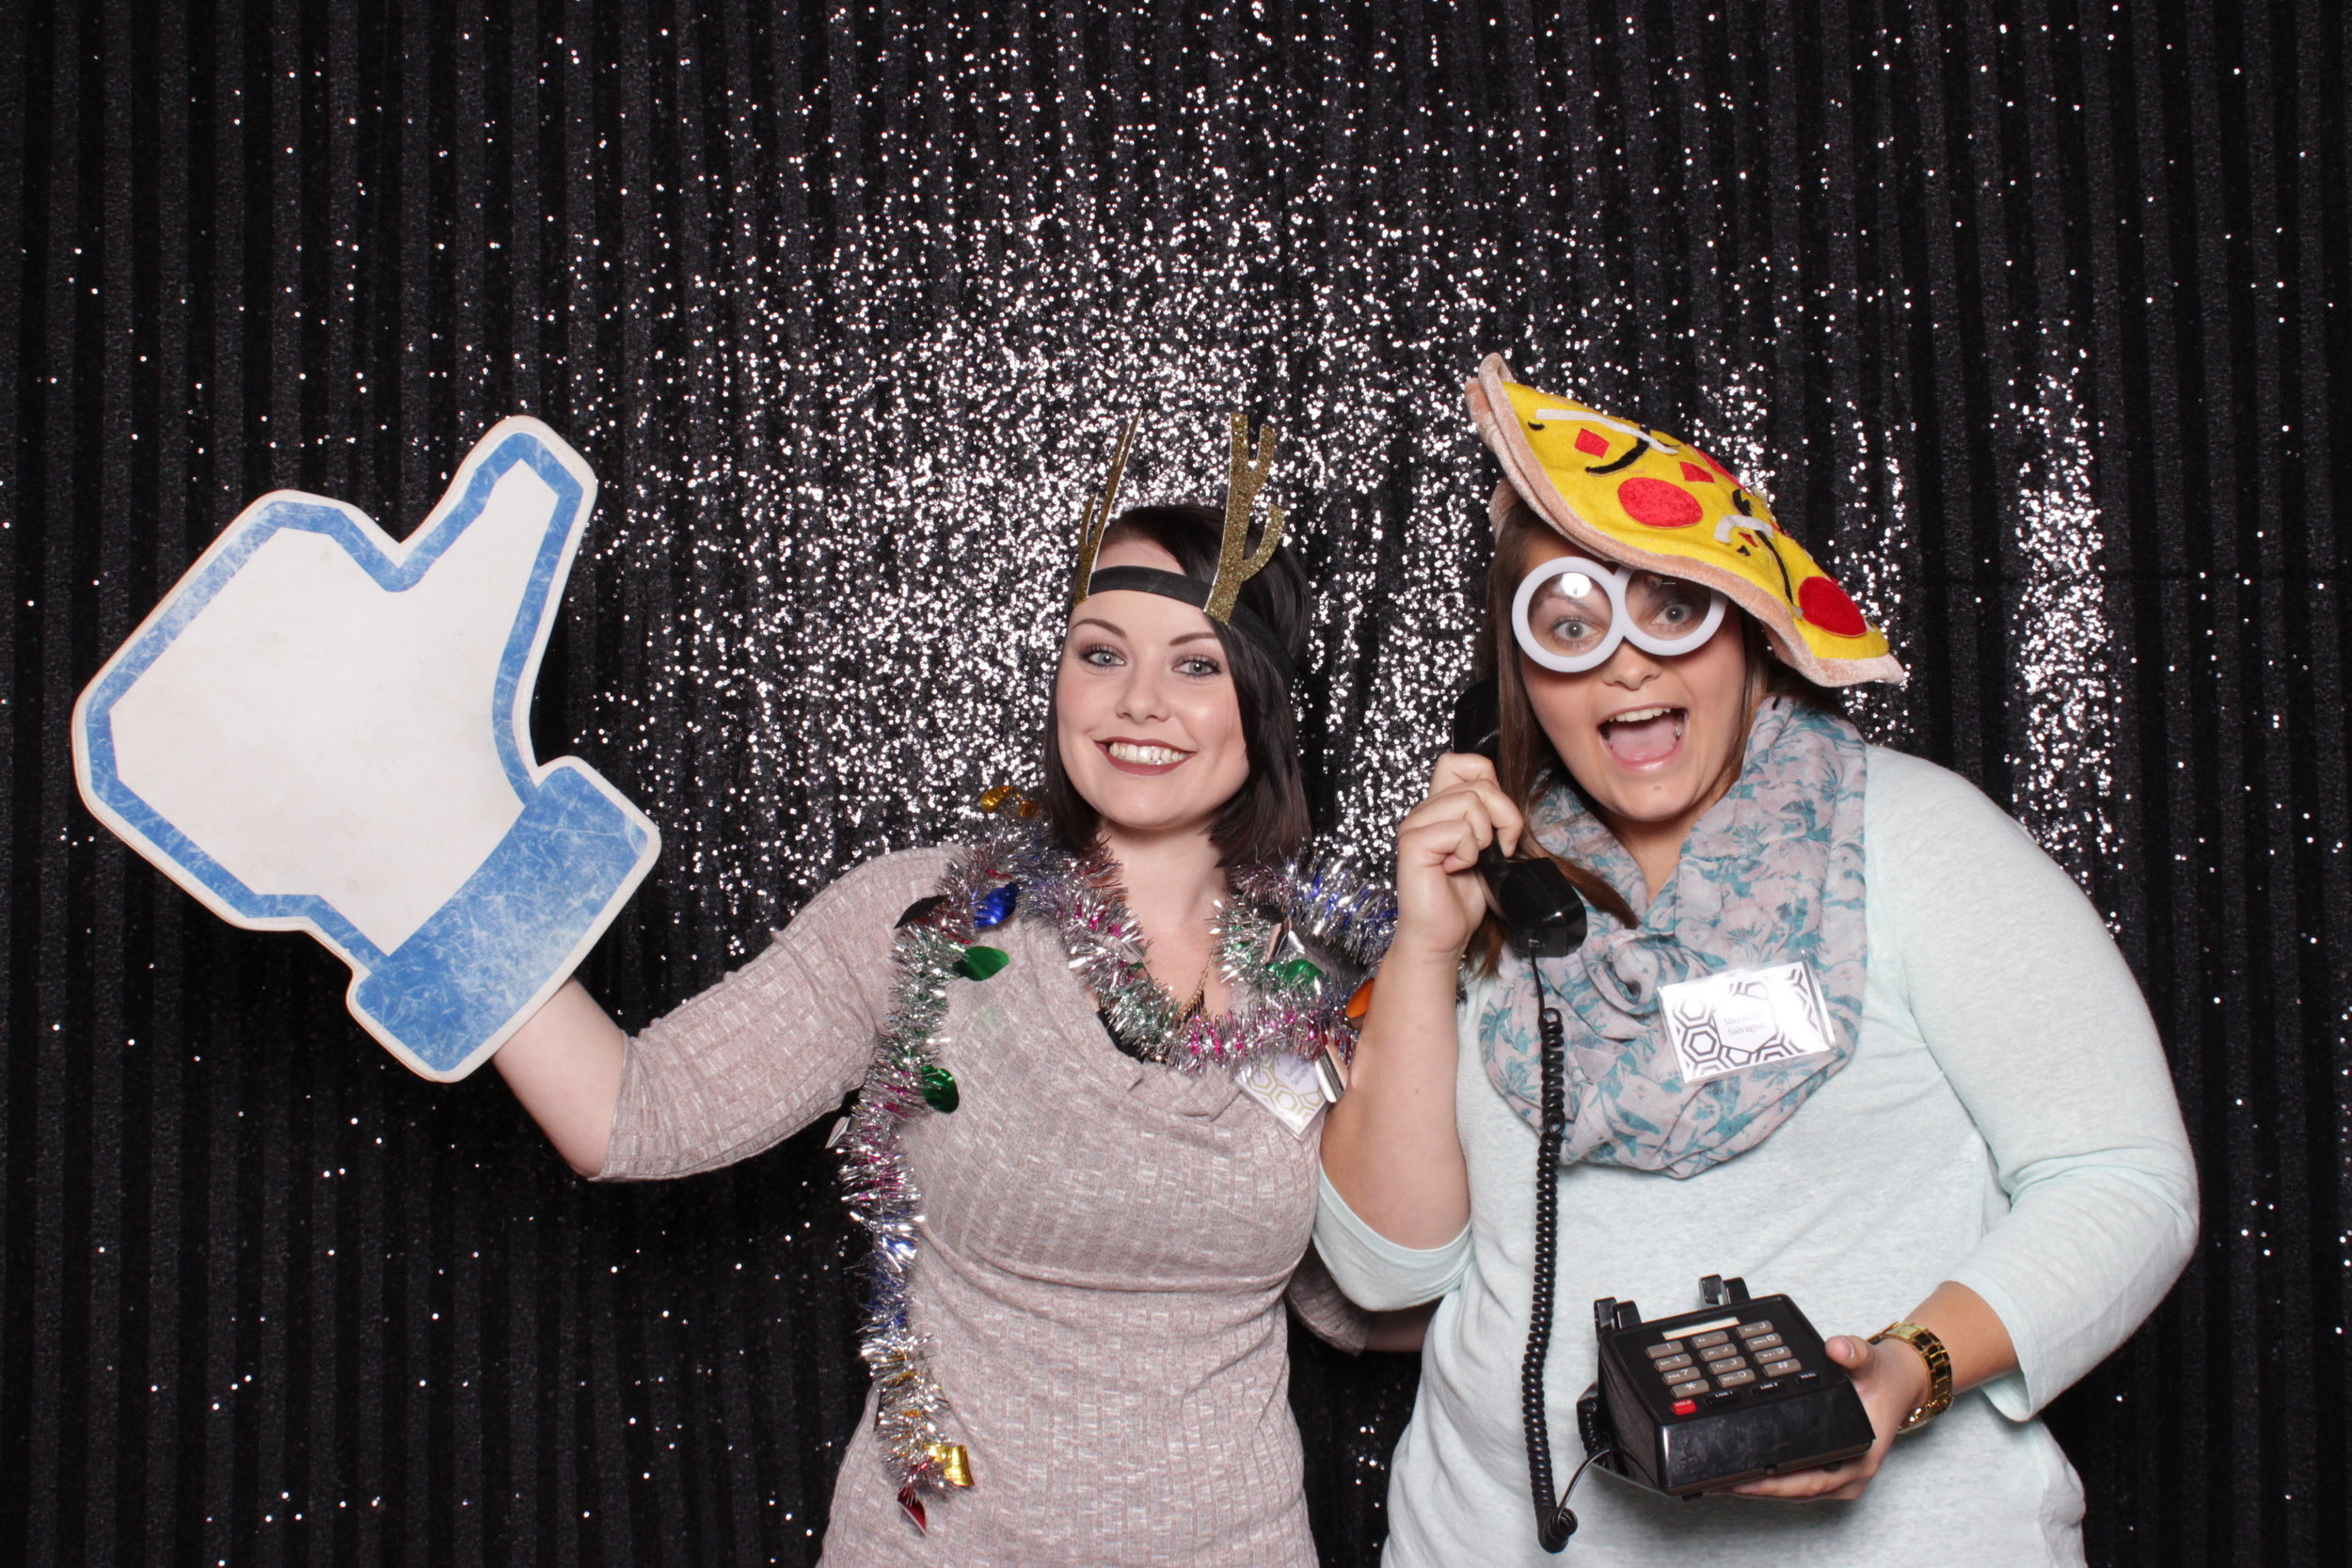 Chico-photo-booth-rental-with-costumes